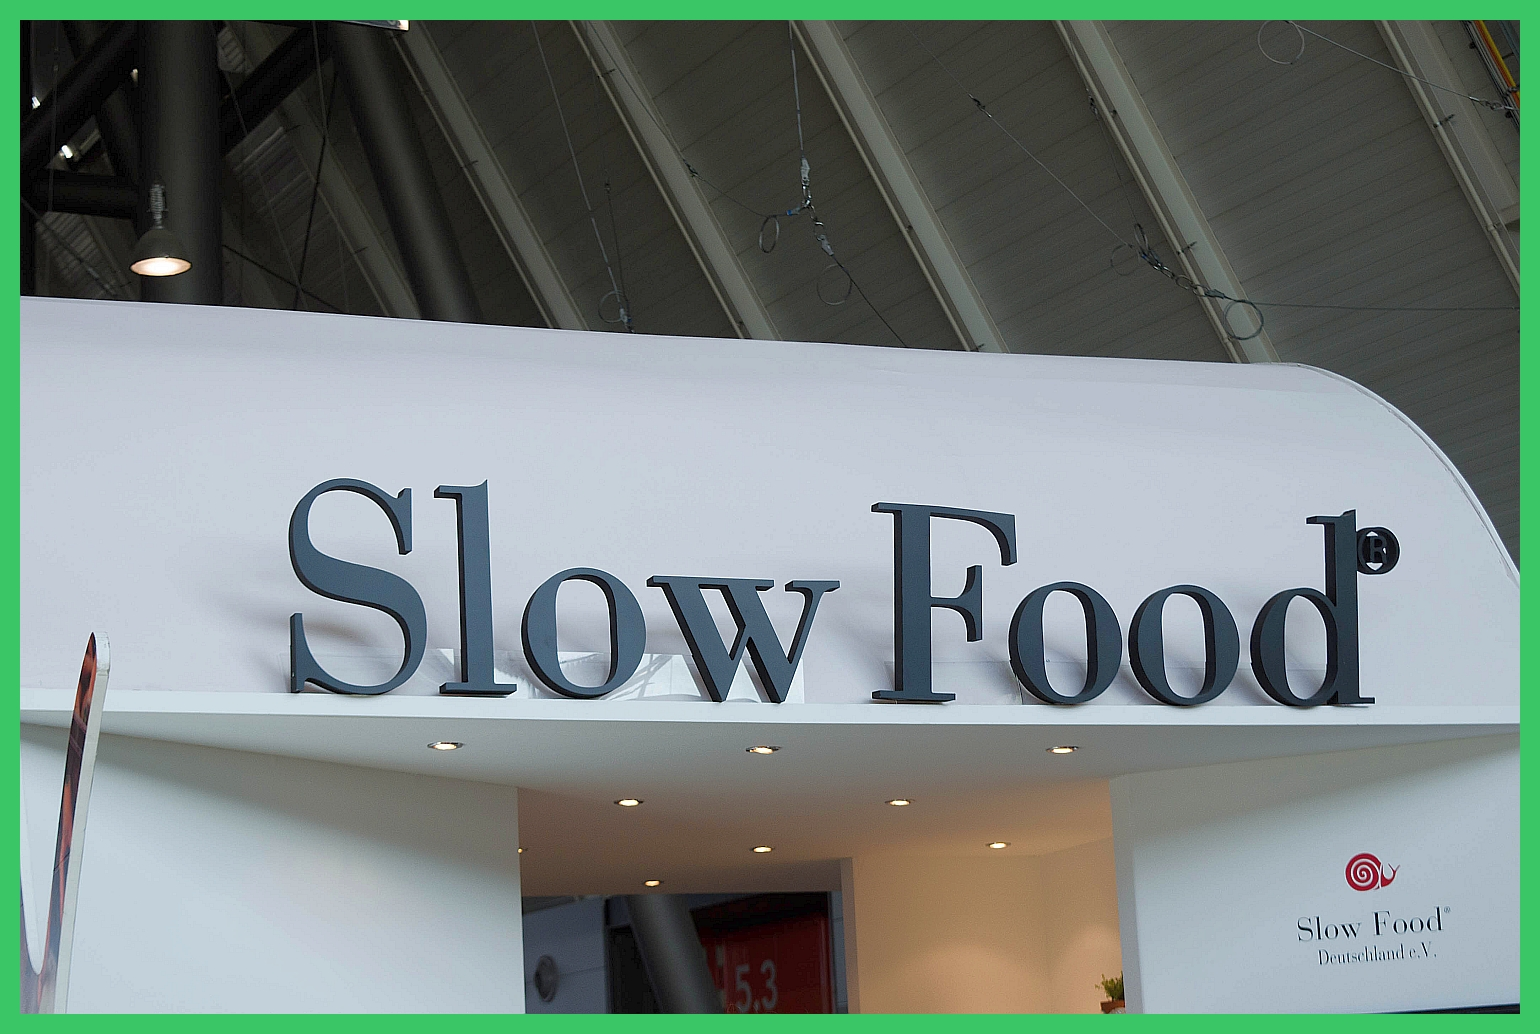 Slow Food-Messe, Stuttgart